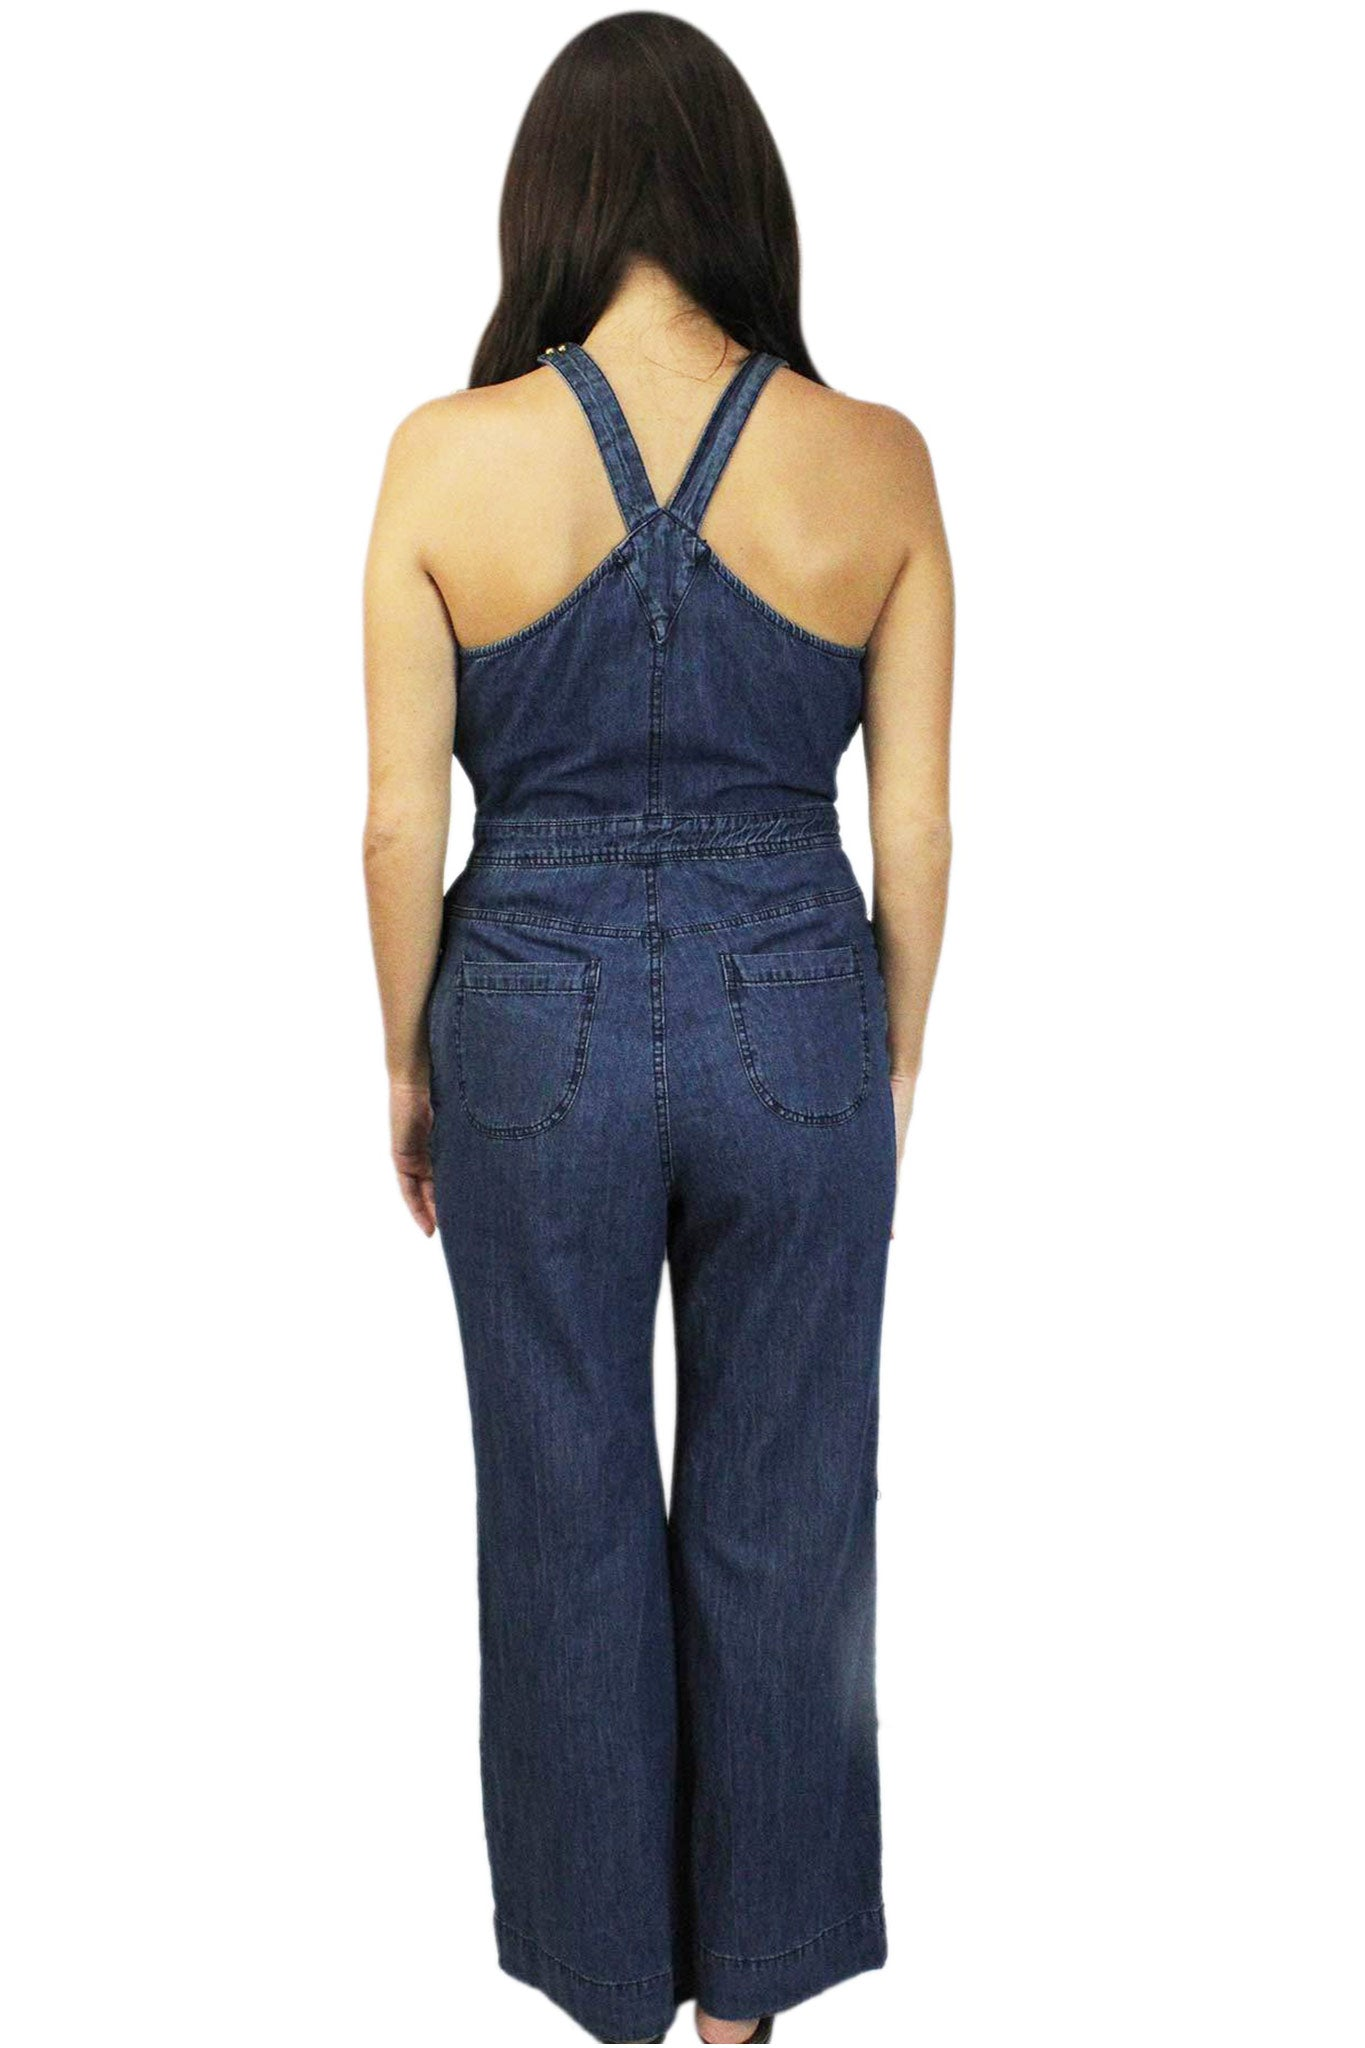 Days in Denim Jumpsuit